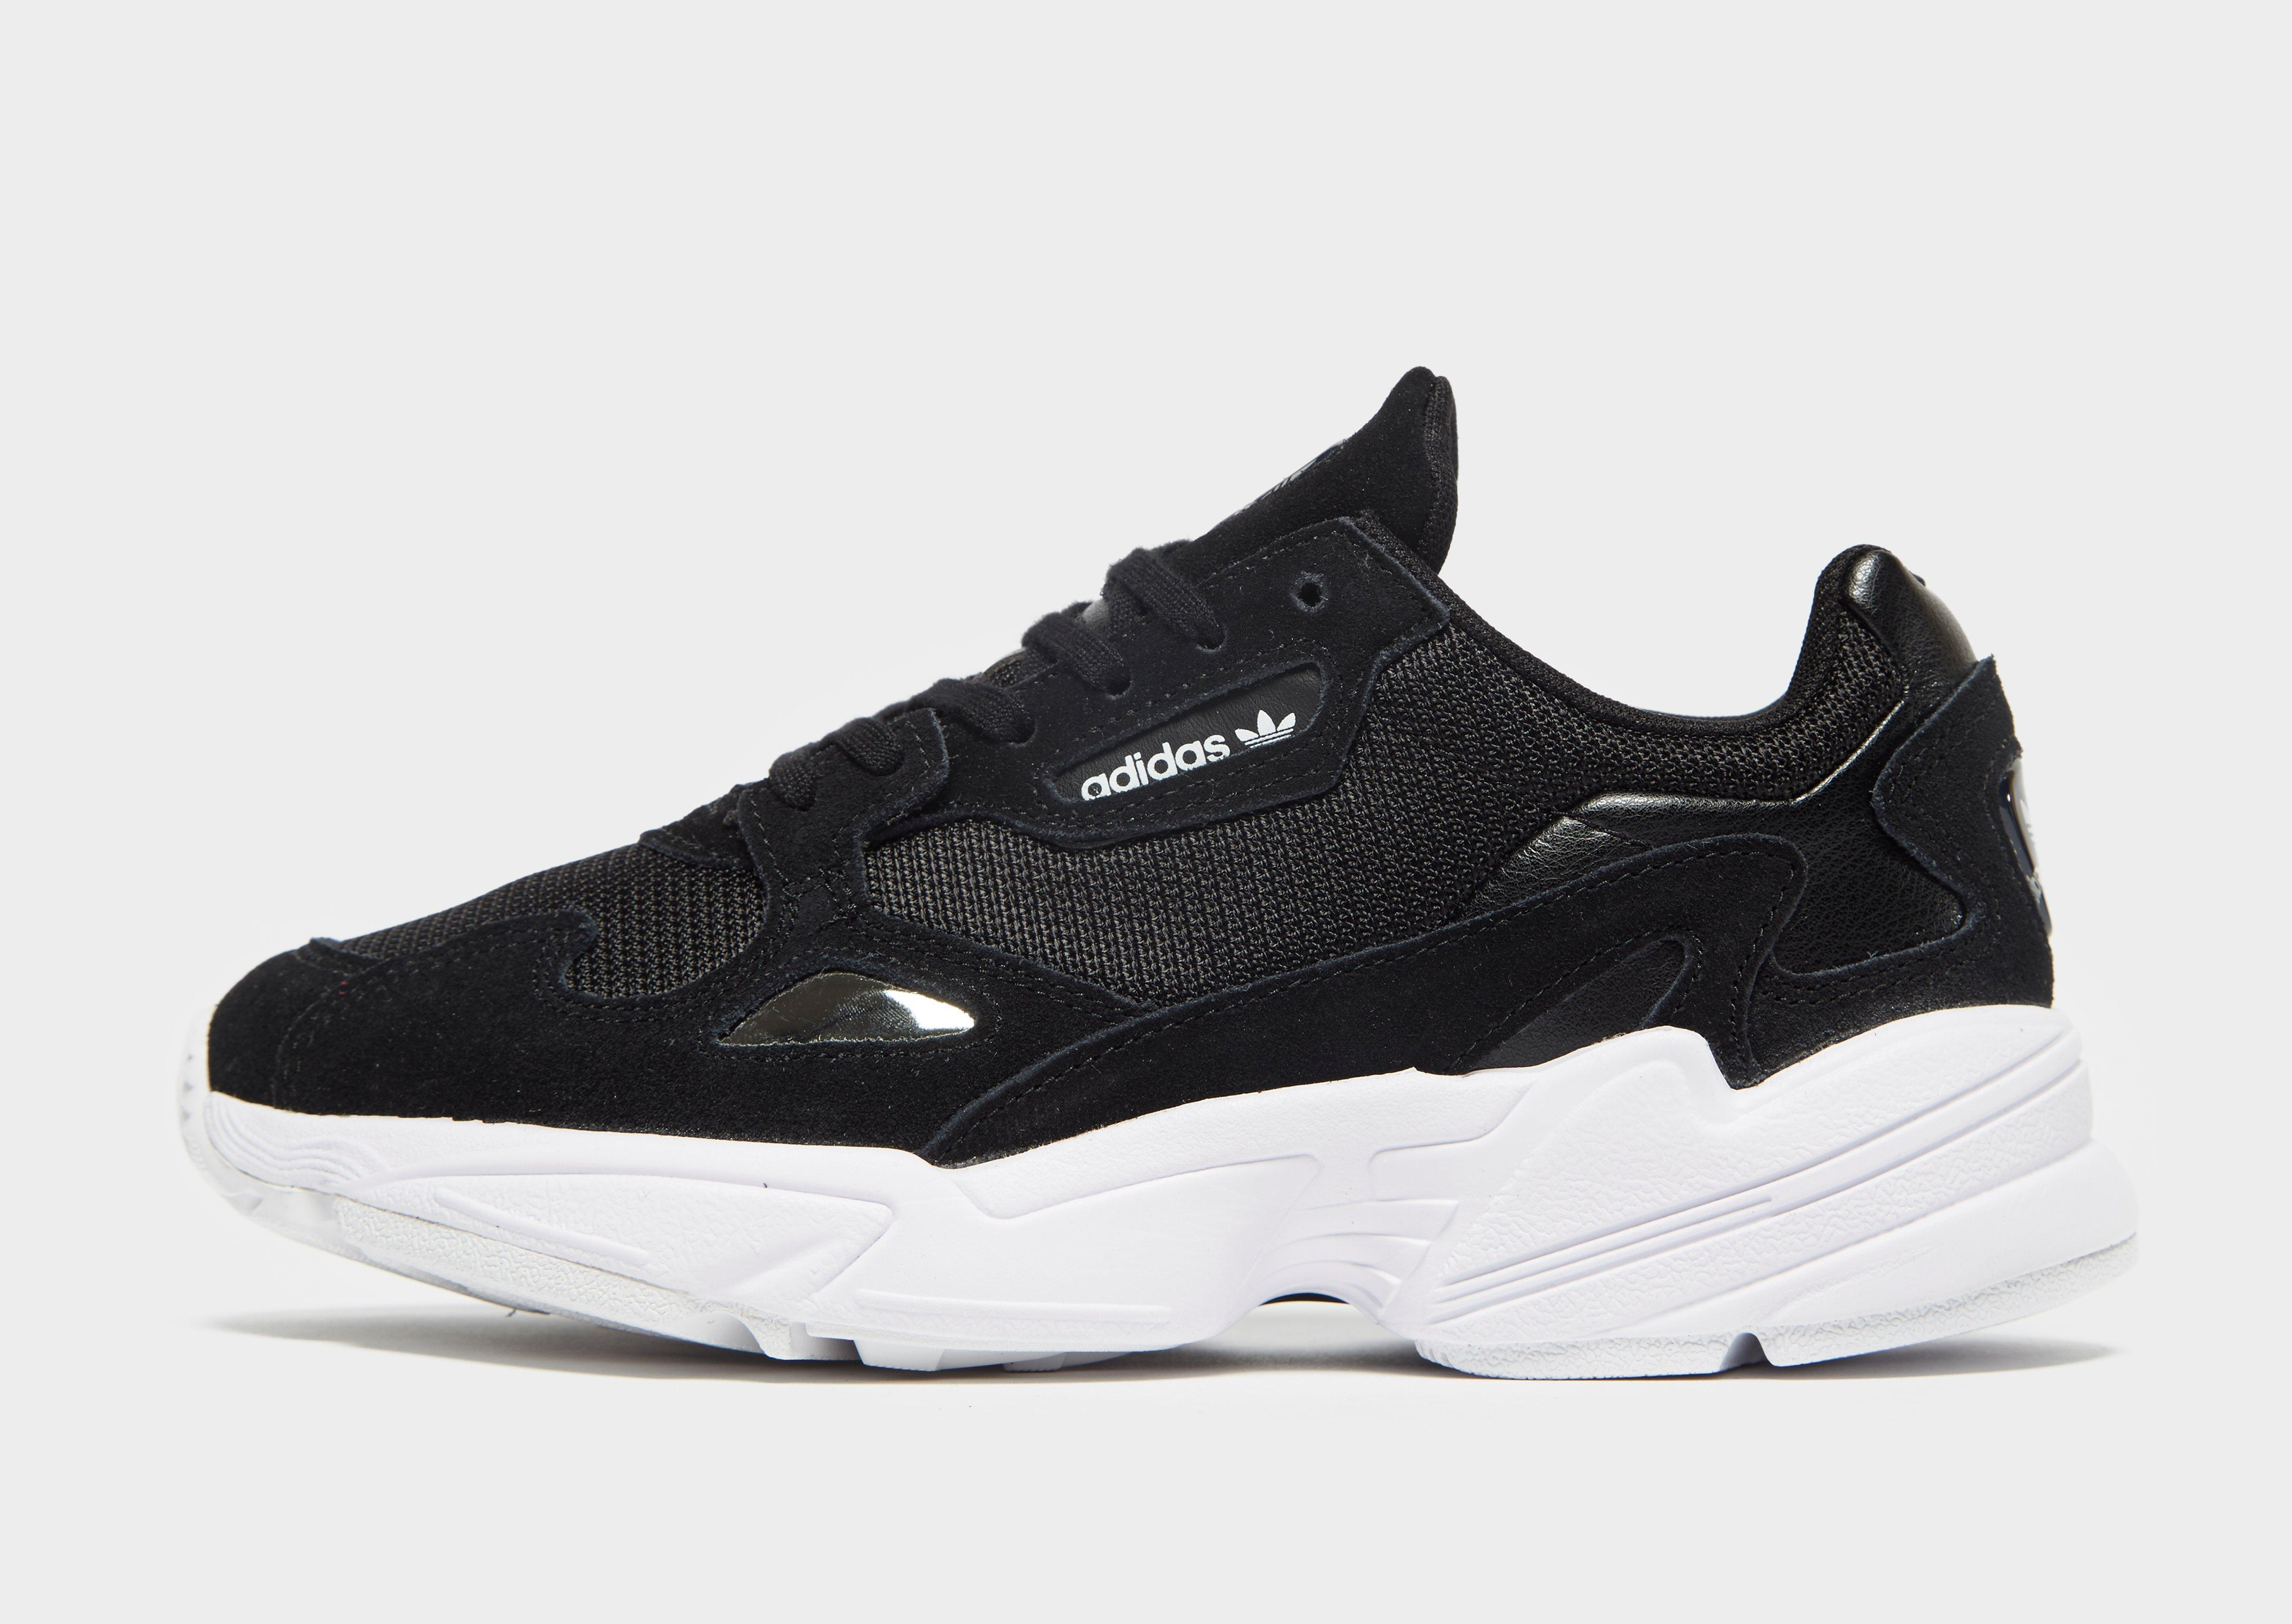 24a1c2513dfd adidas Falcon Shoes in Black - Lyst